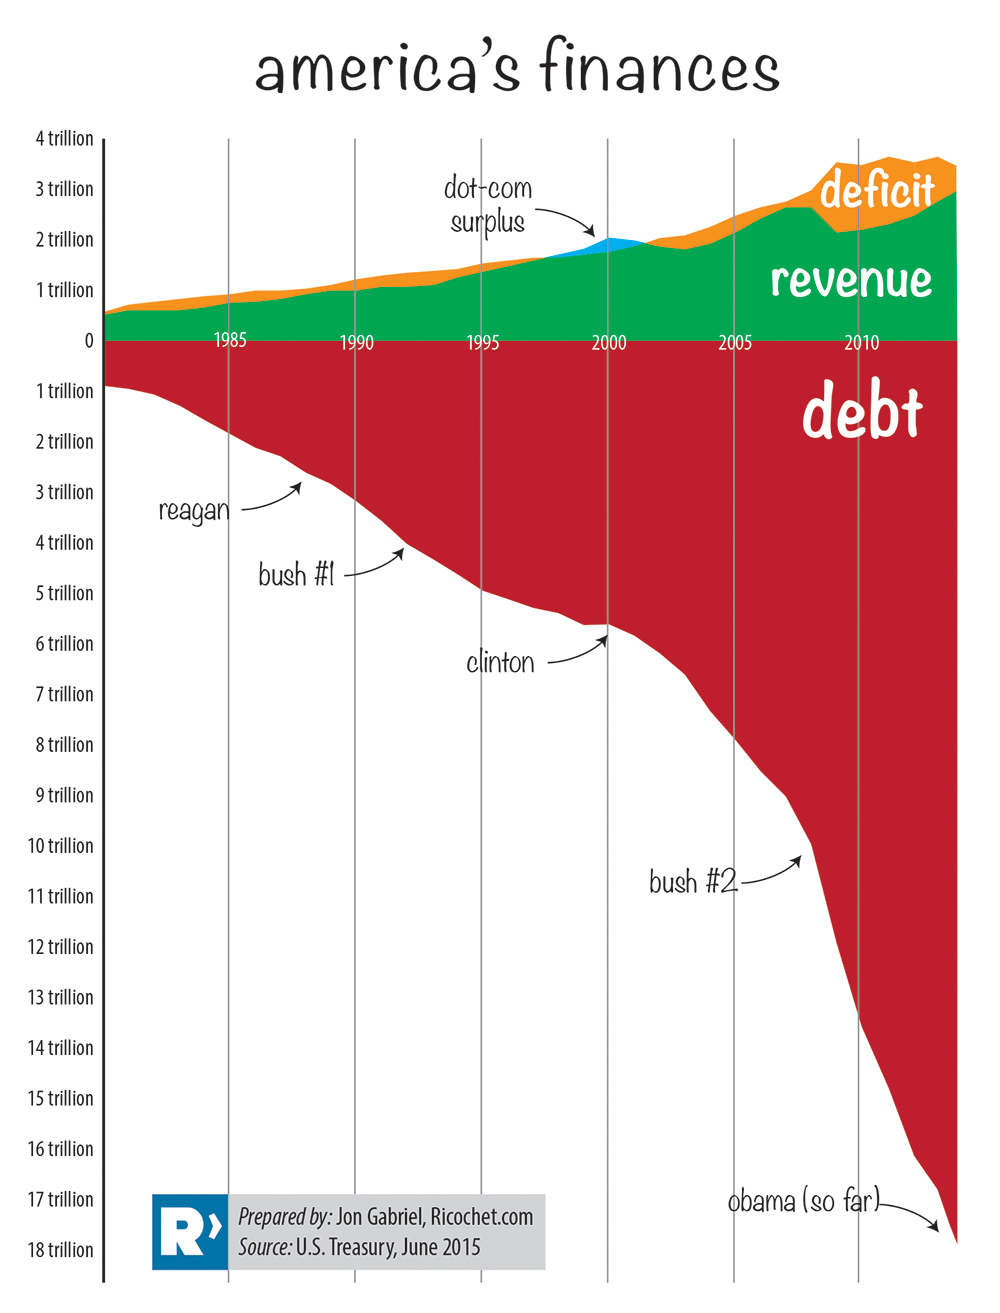 America's Finances - Source: Ricochet (John Gabriel) - https://7373-presscdn-0-43-pagely.netdna-ssl.com/wp-content/uploads/2015/06/debtchart2014.png